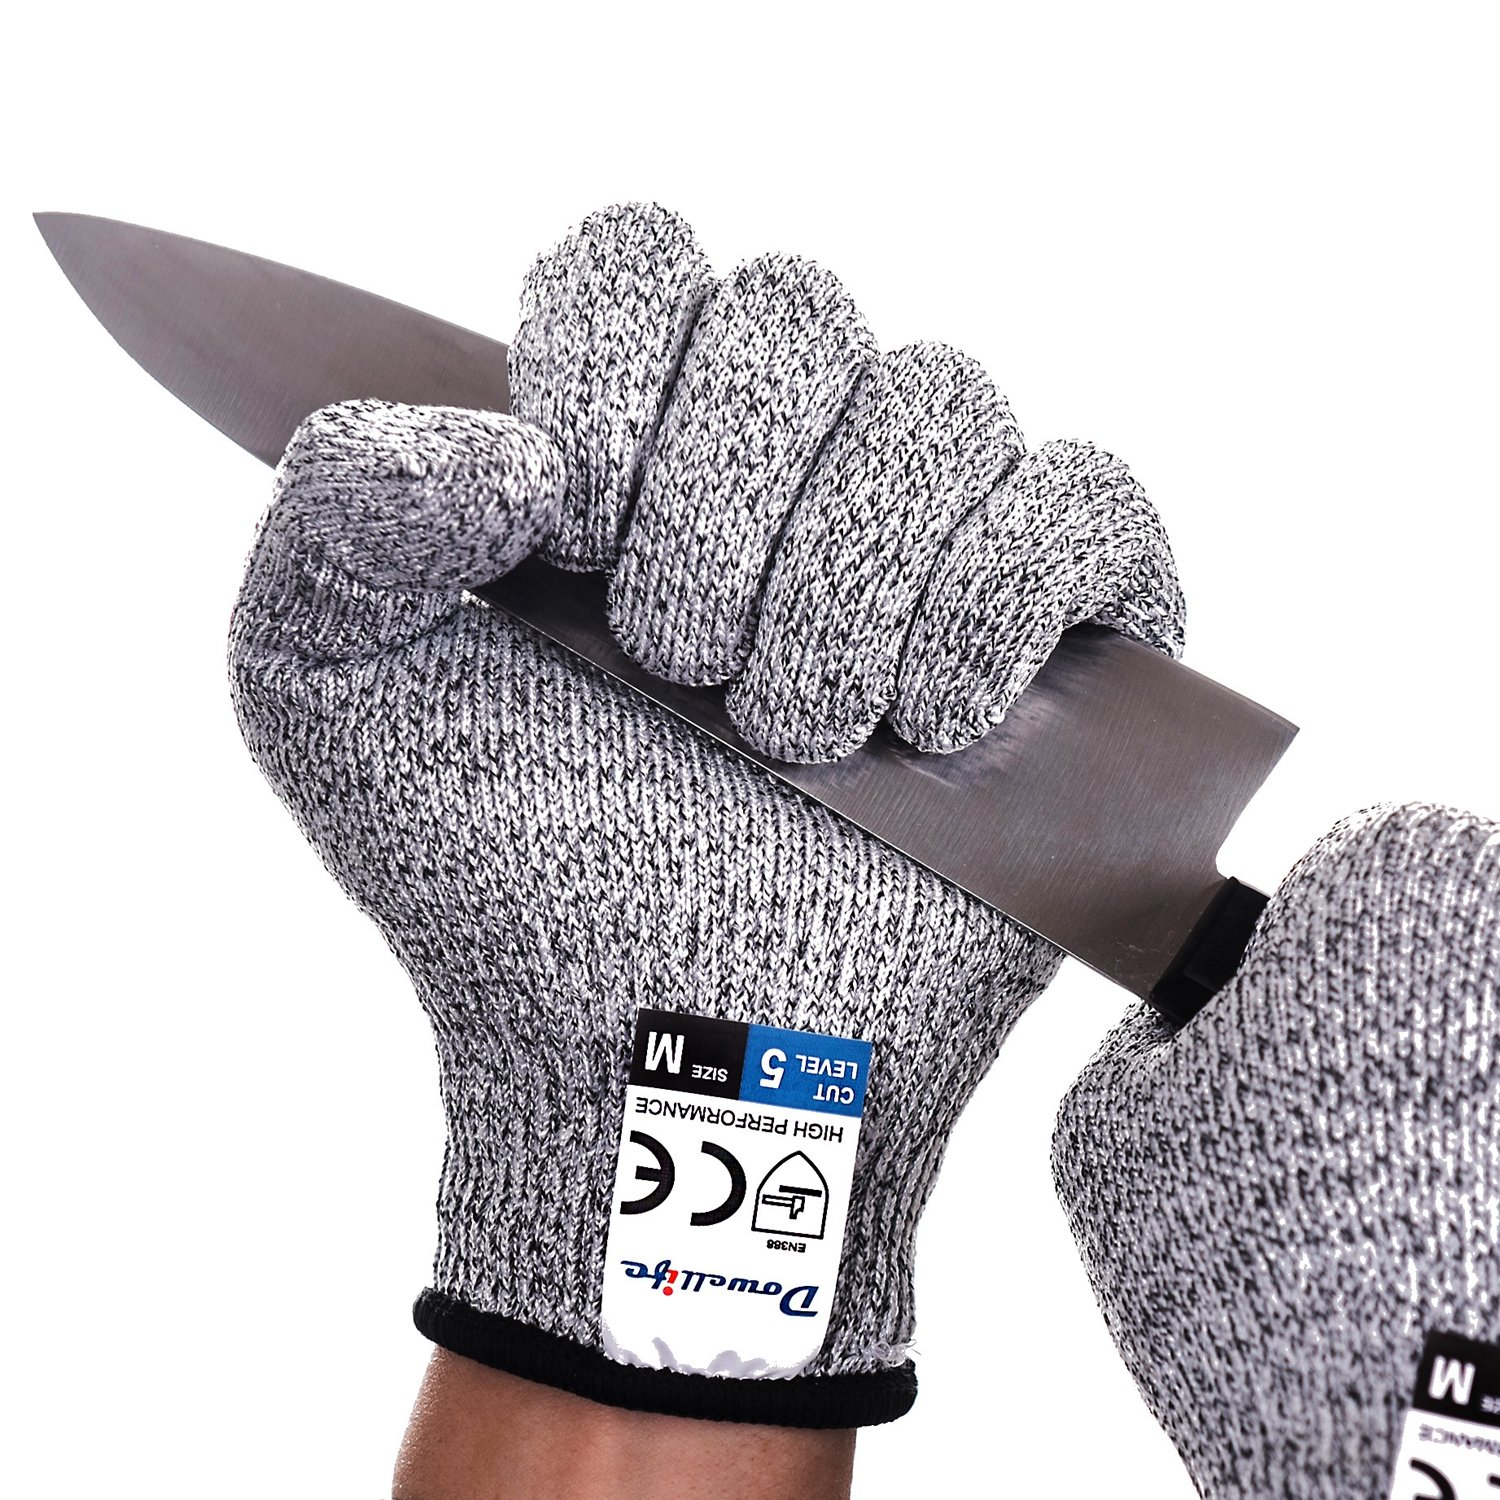 Dowellife Cut Resistant Gloves Food Grade Level 5 Protection, Safety Kitchen Cuts Gloves for Oyster Shucking, Fish Fillet Processing, Mandolin Slicing, Meat Cutting and Wood Carving. 1